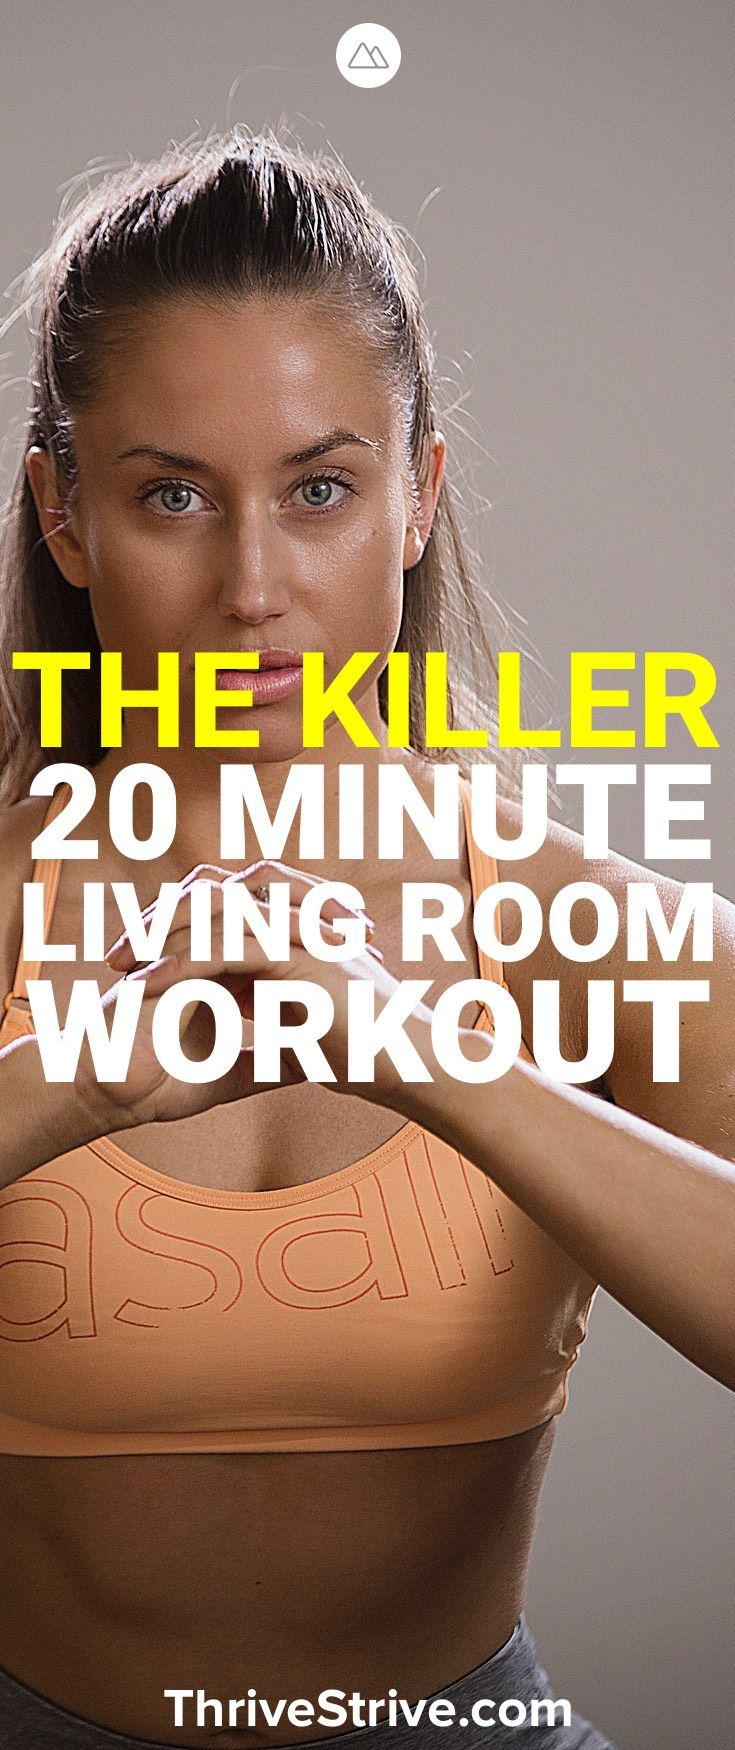 Awesome The Killer 20 Minute Living Room Workout: Get Your Sweat On At Home Part 26